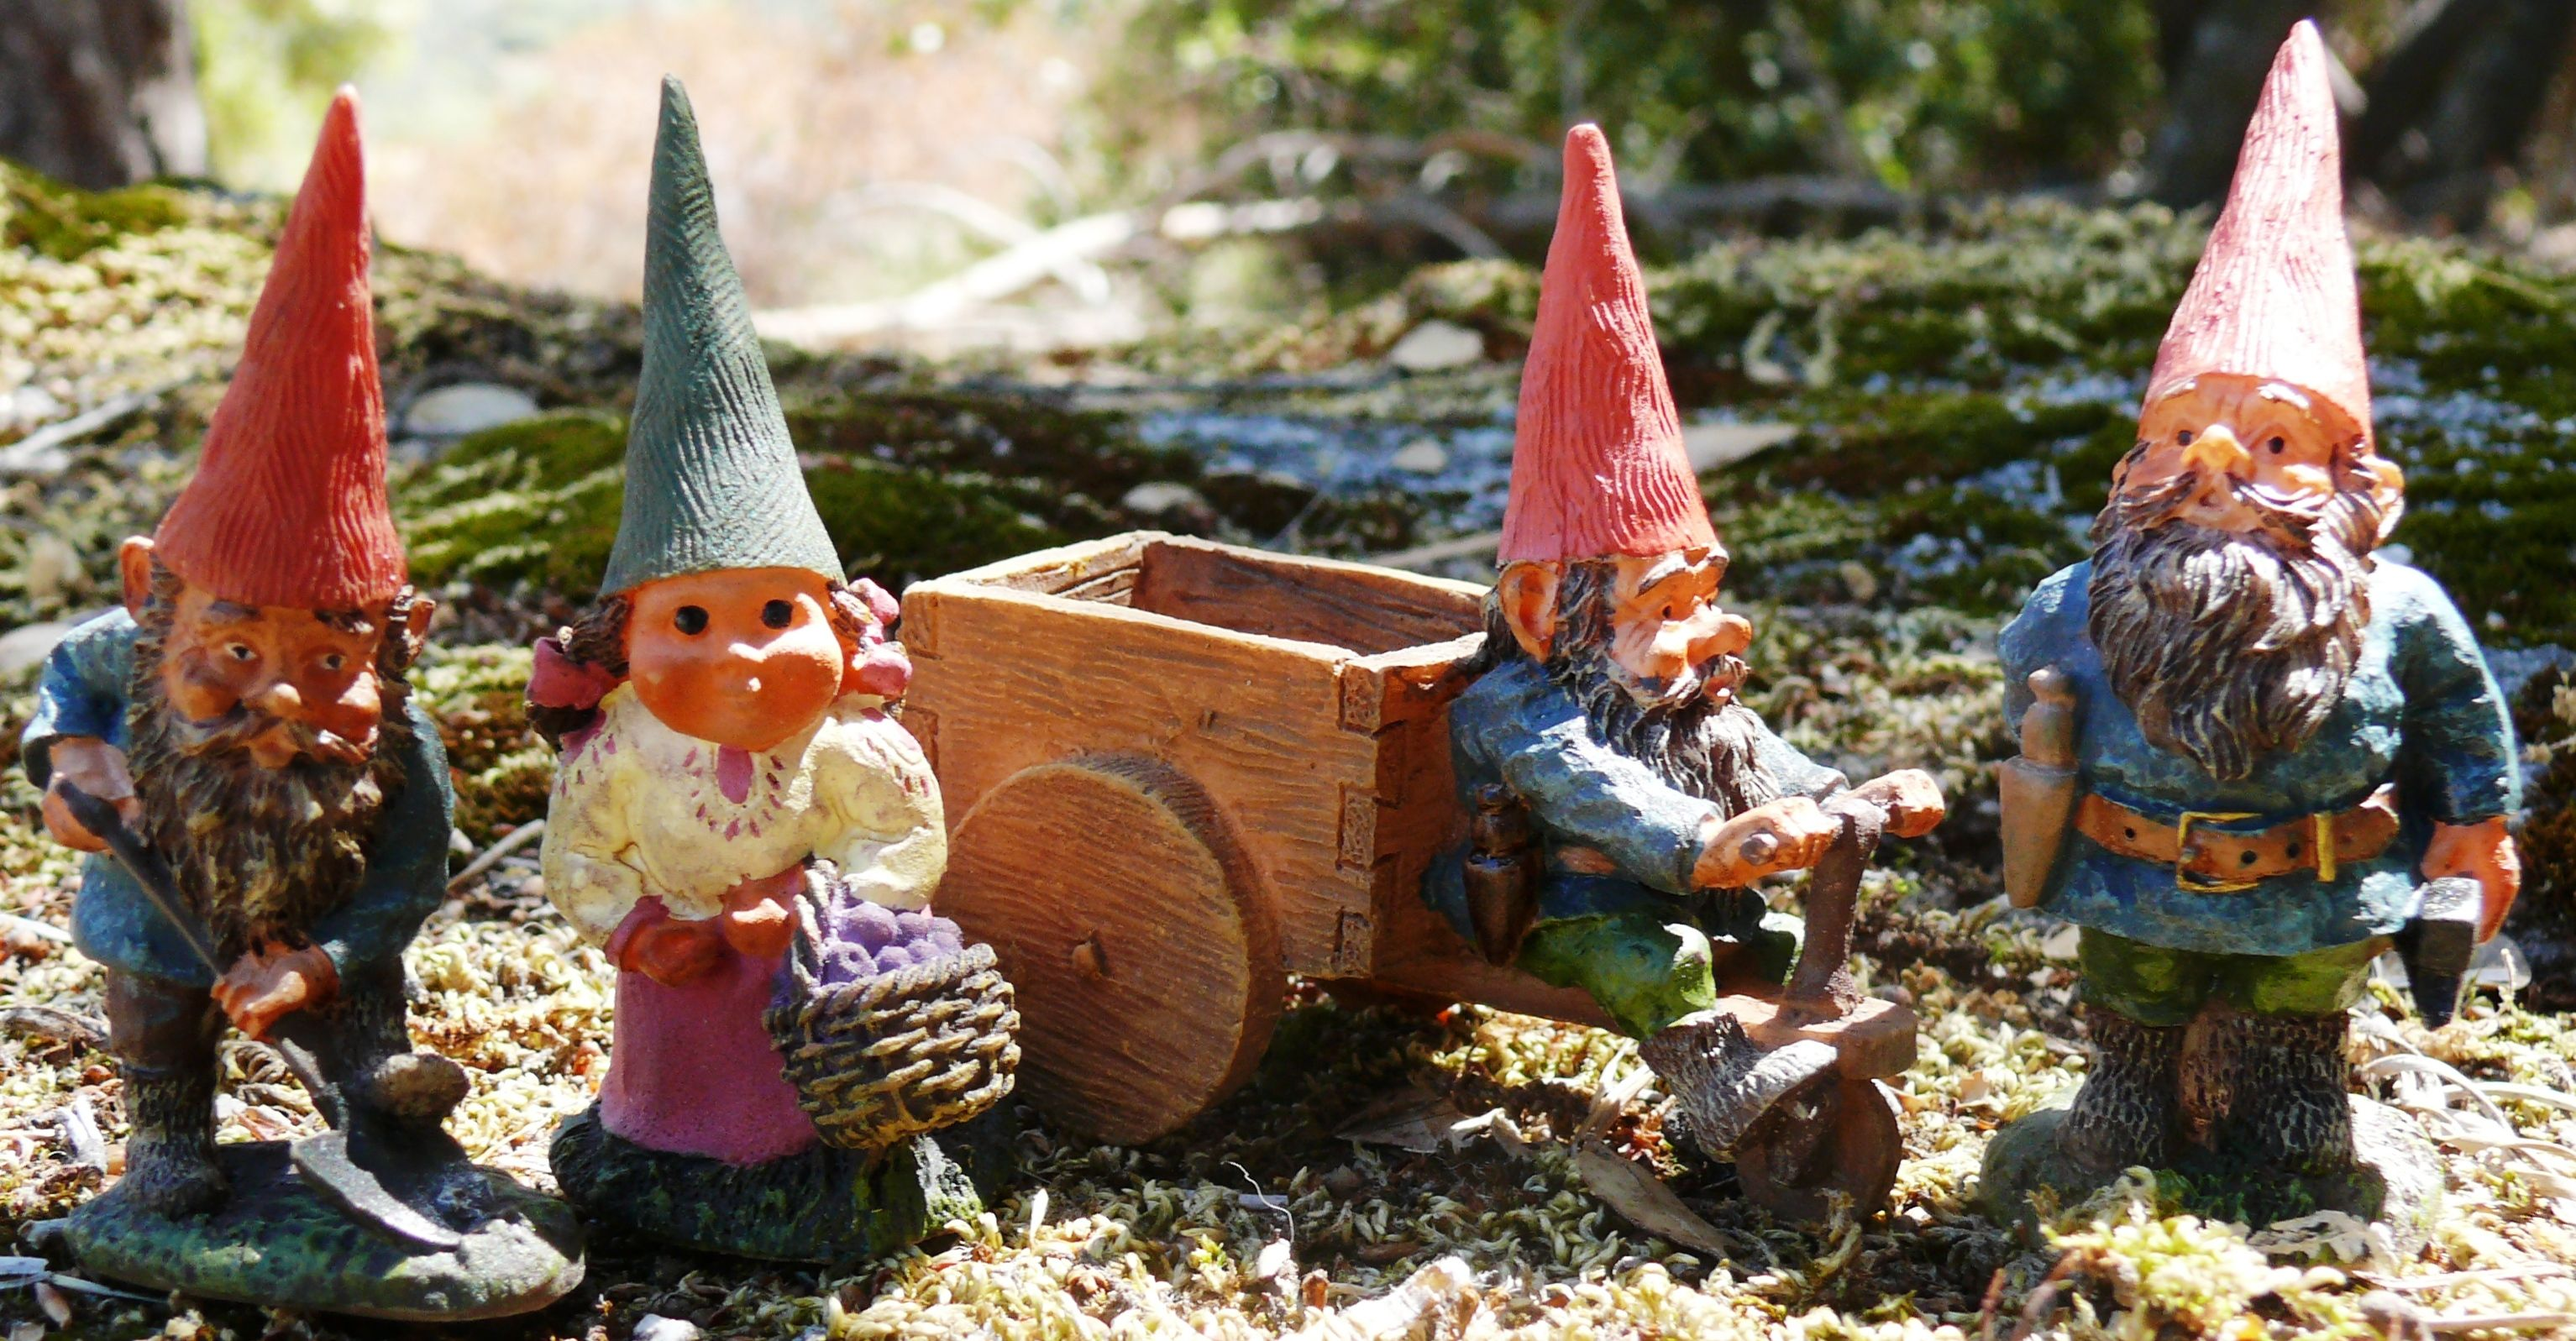 Four Little Garden Gnomes Are Hard At Work In Our Enchanted Miniature  Forest.